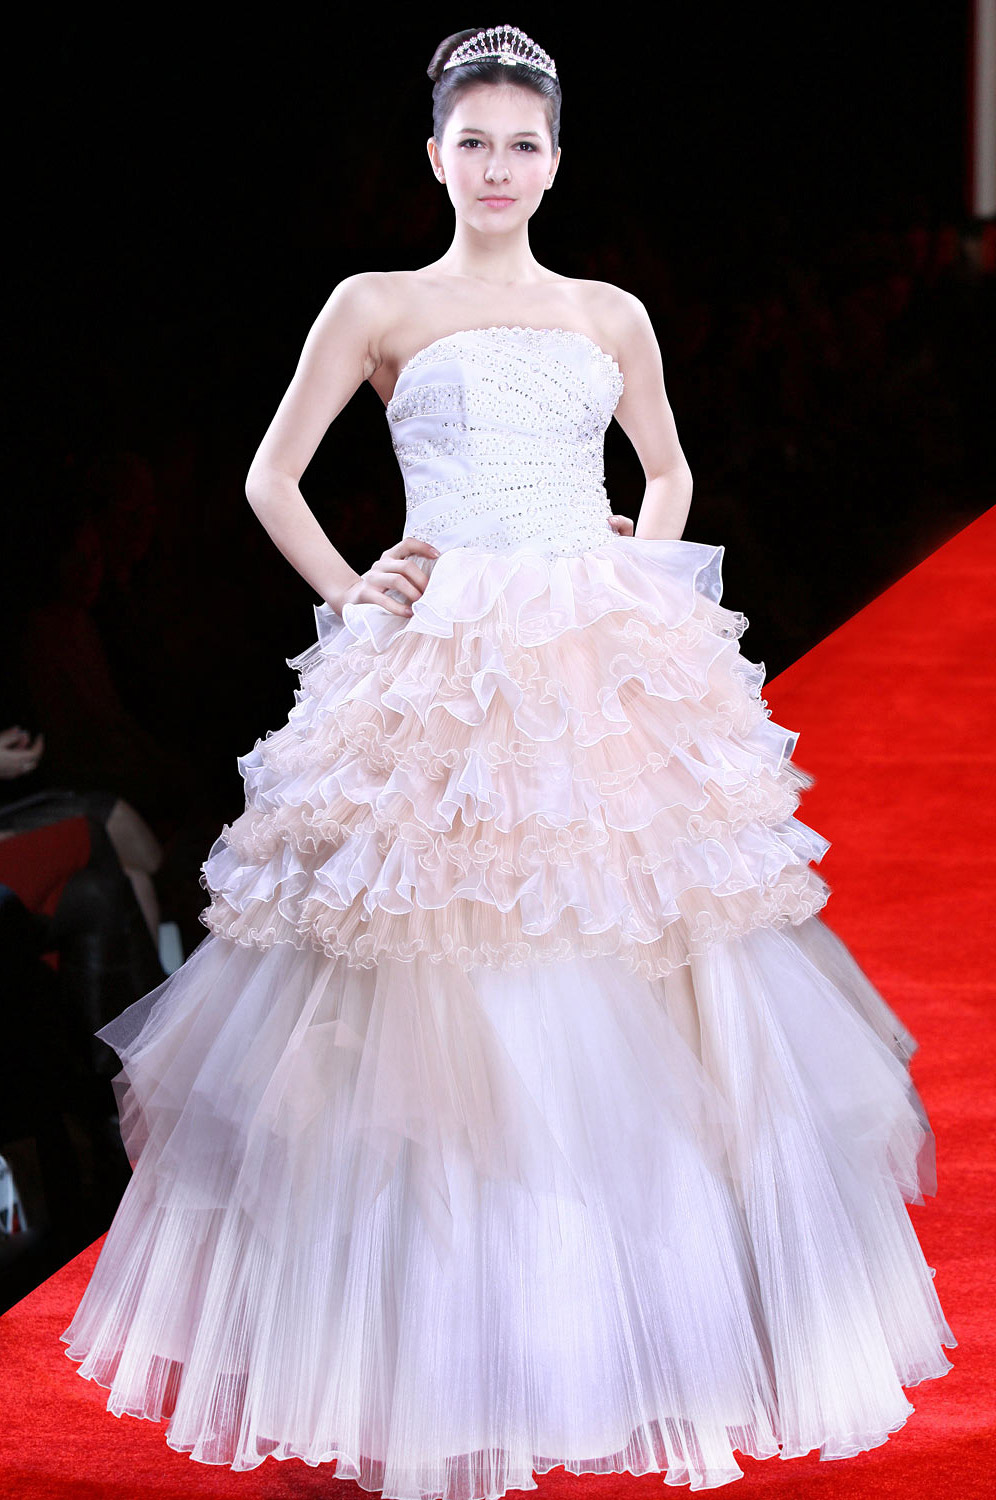 Christmas Discount 50% Off eDressit White Prom Gown Evening Wedding Dress (01090207)